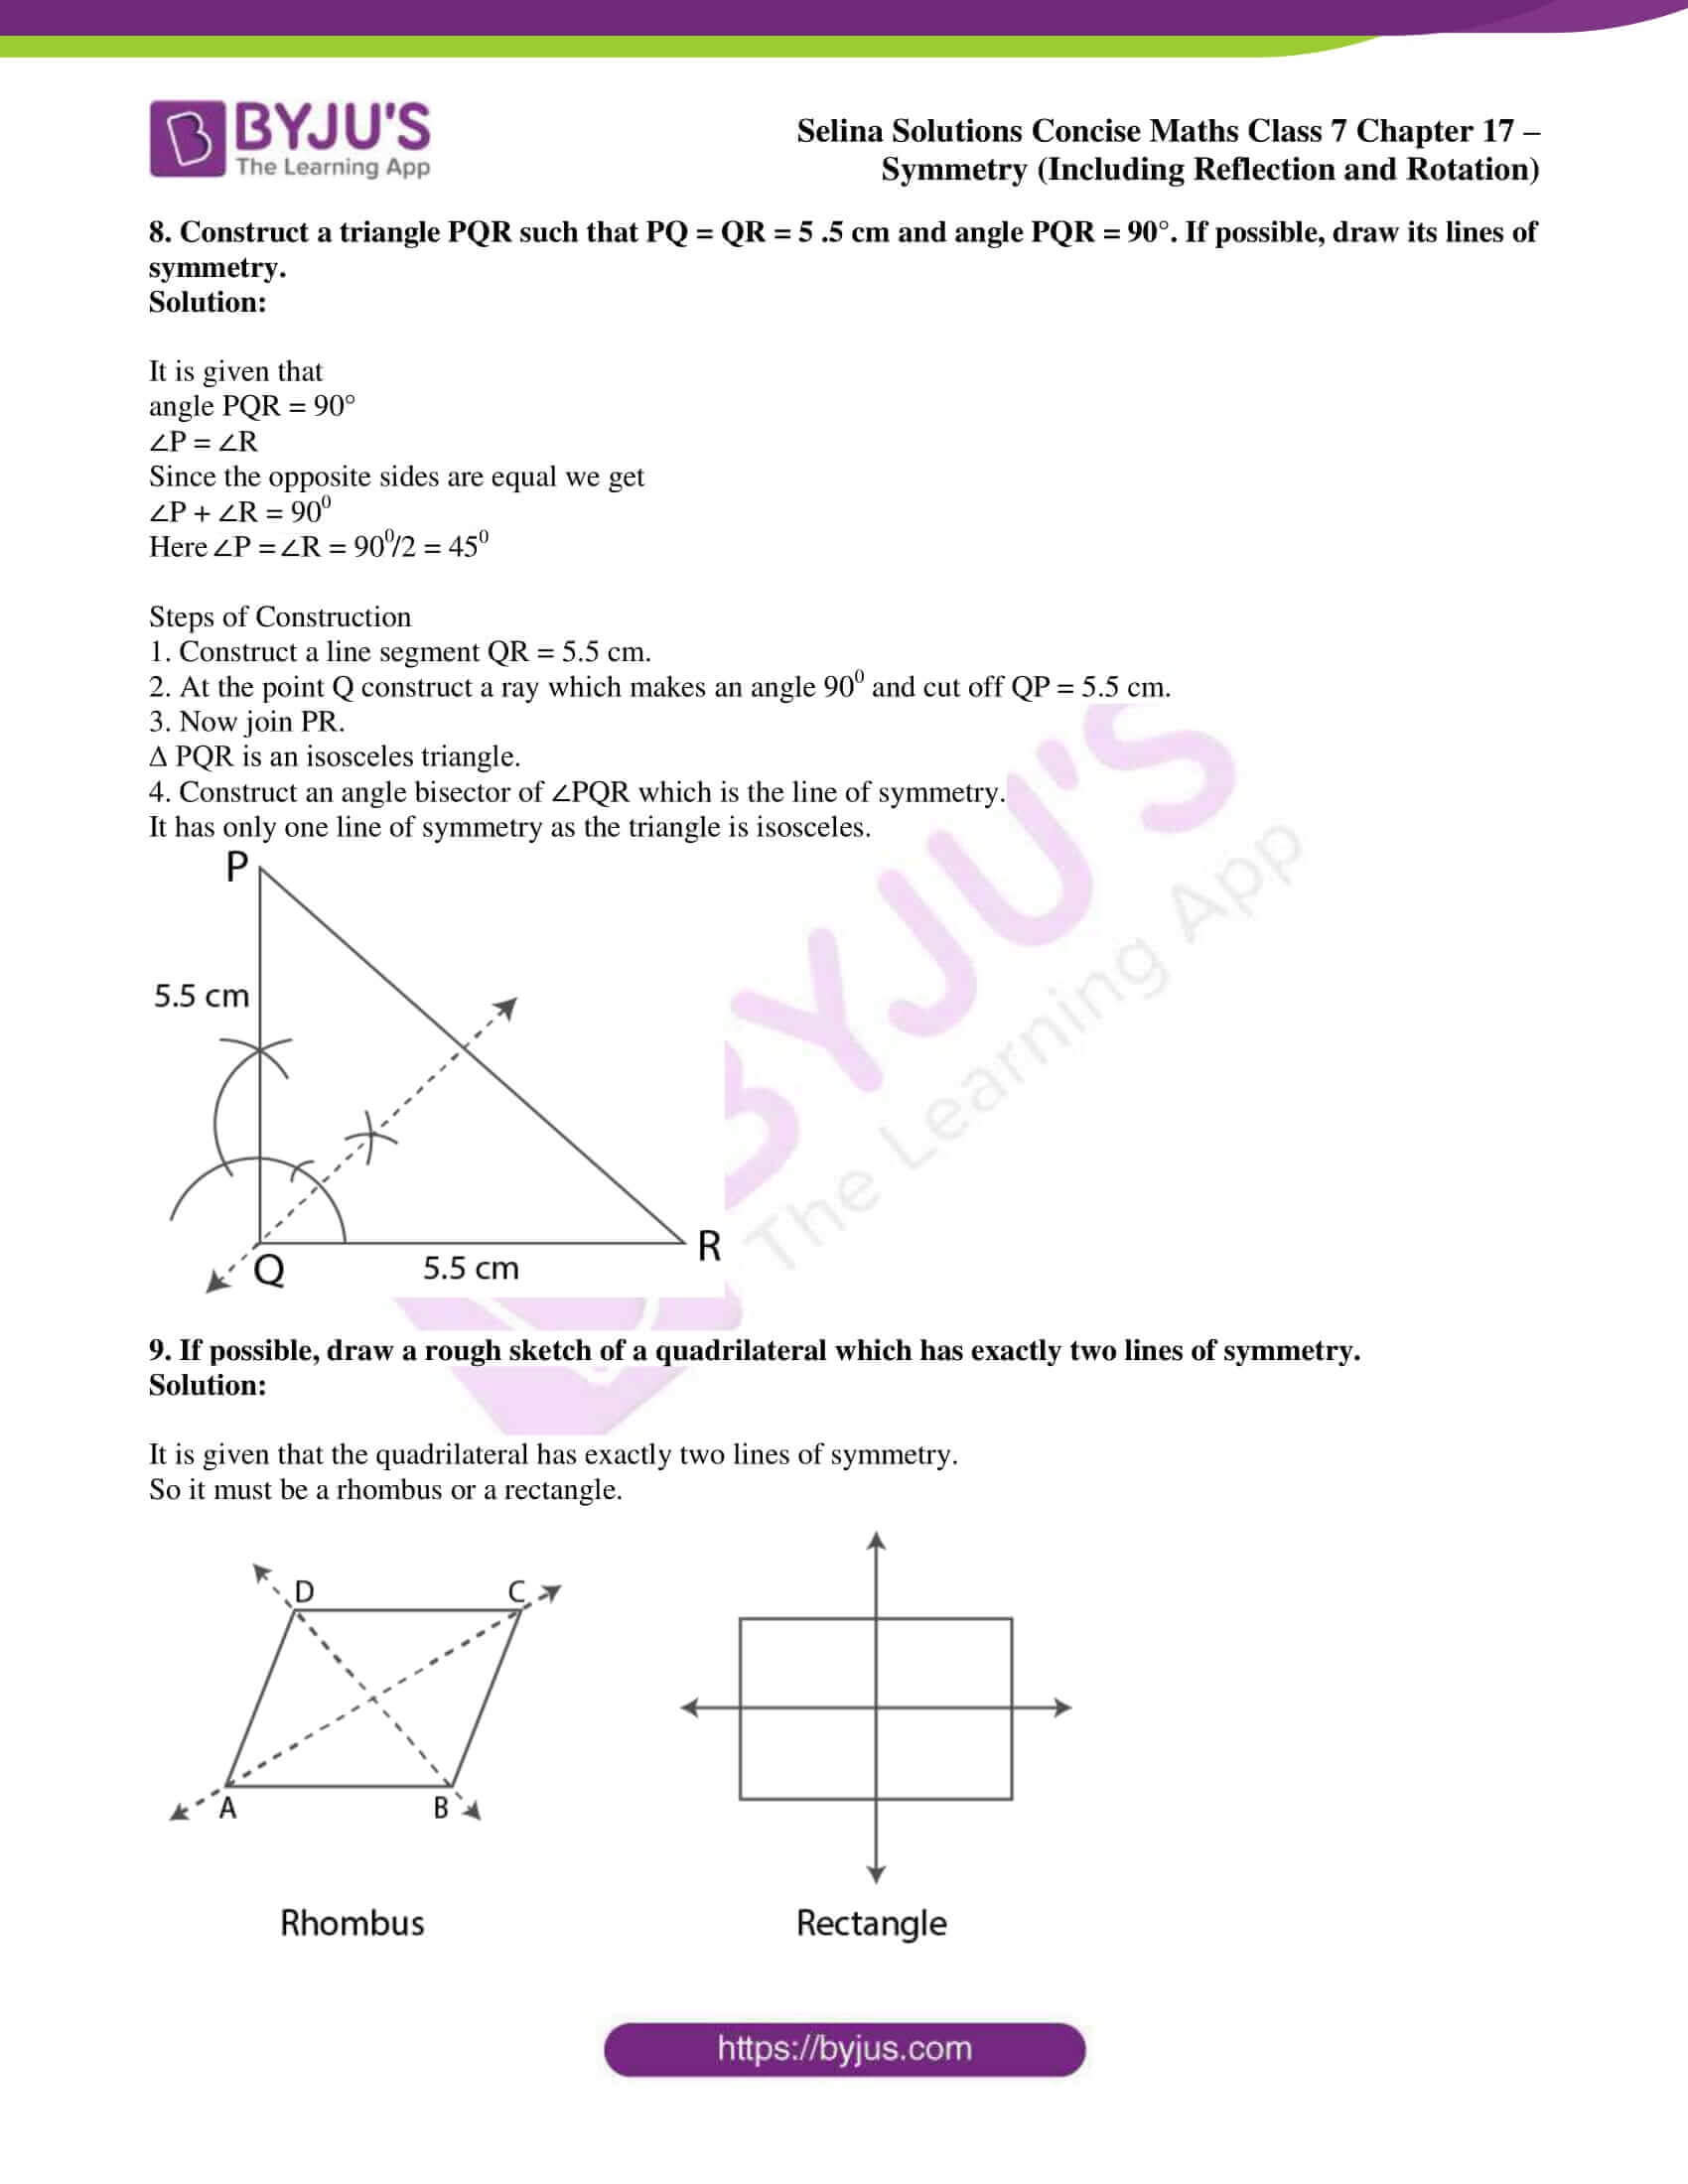 selina sol concise maths class 7 chapter 17 ex a 7